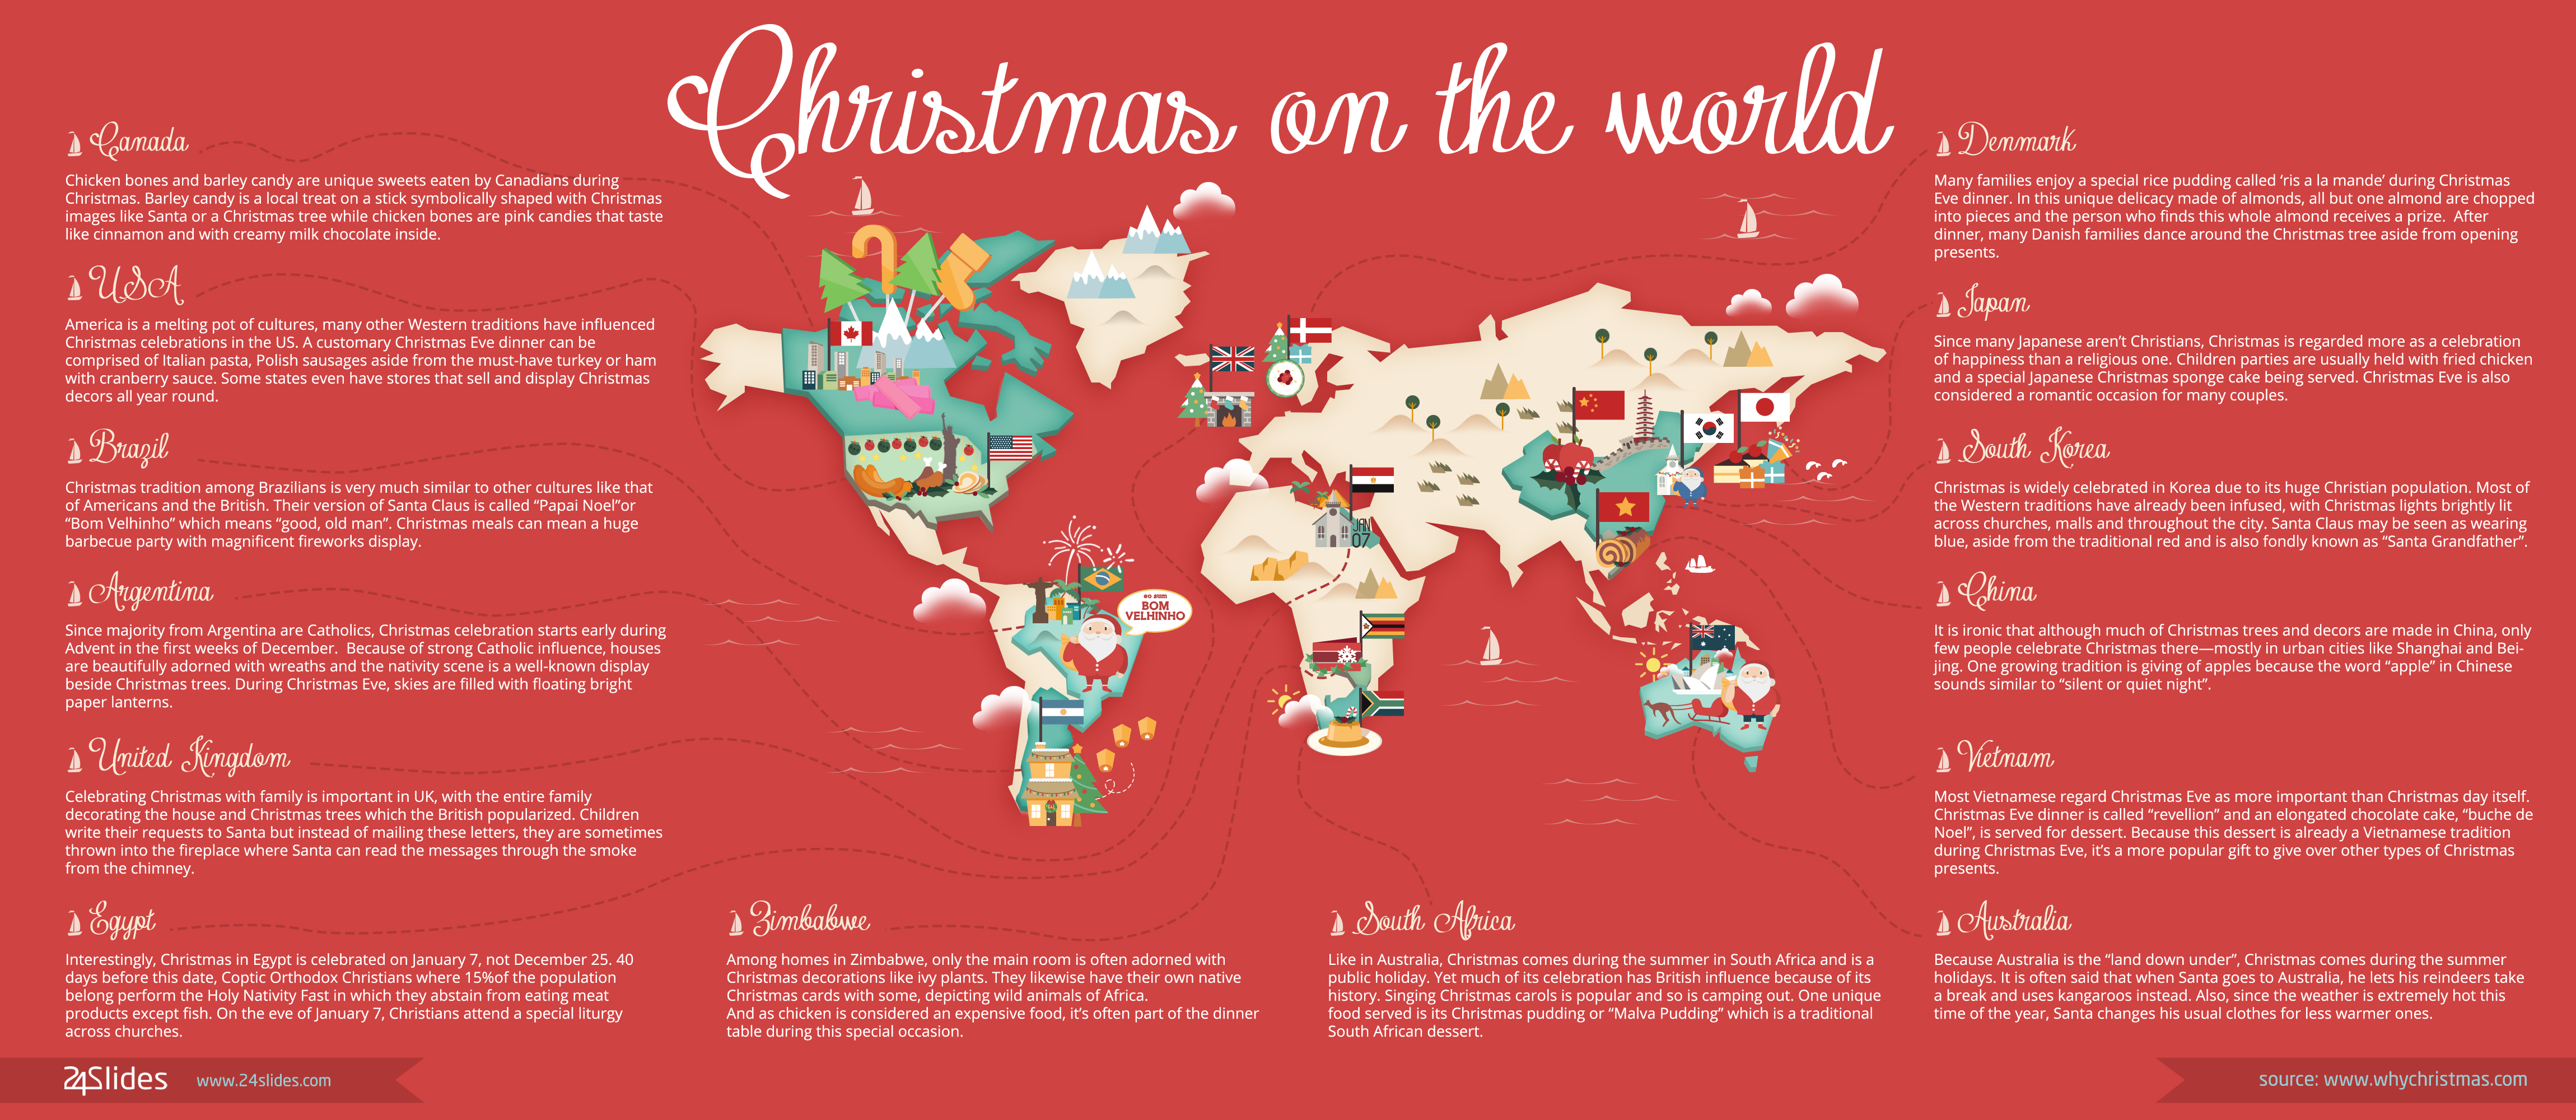 Christmas decoration all around the world -  Infographic Christmas On The World